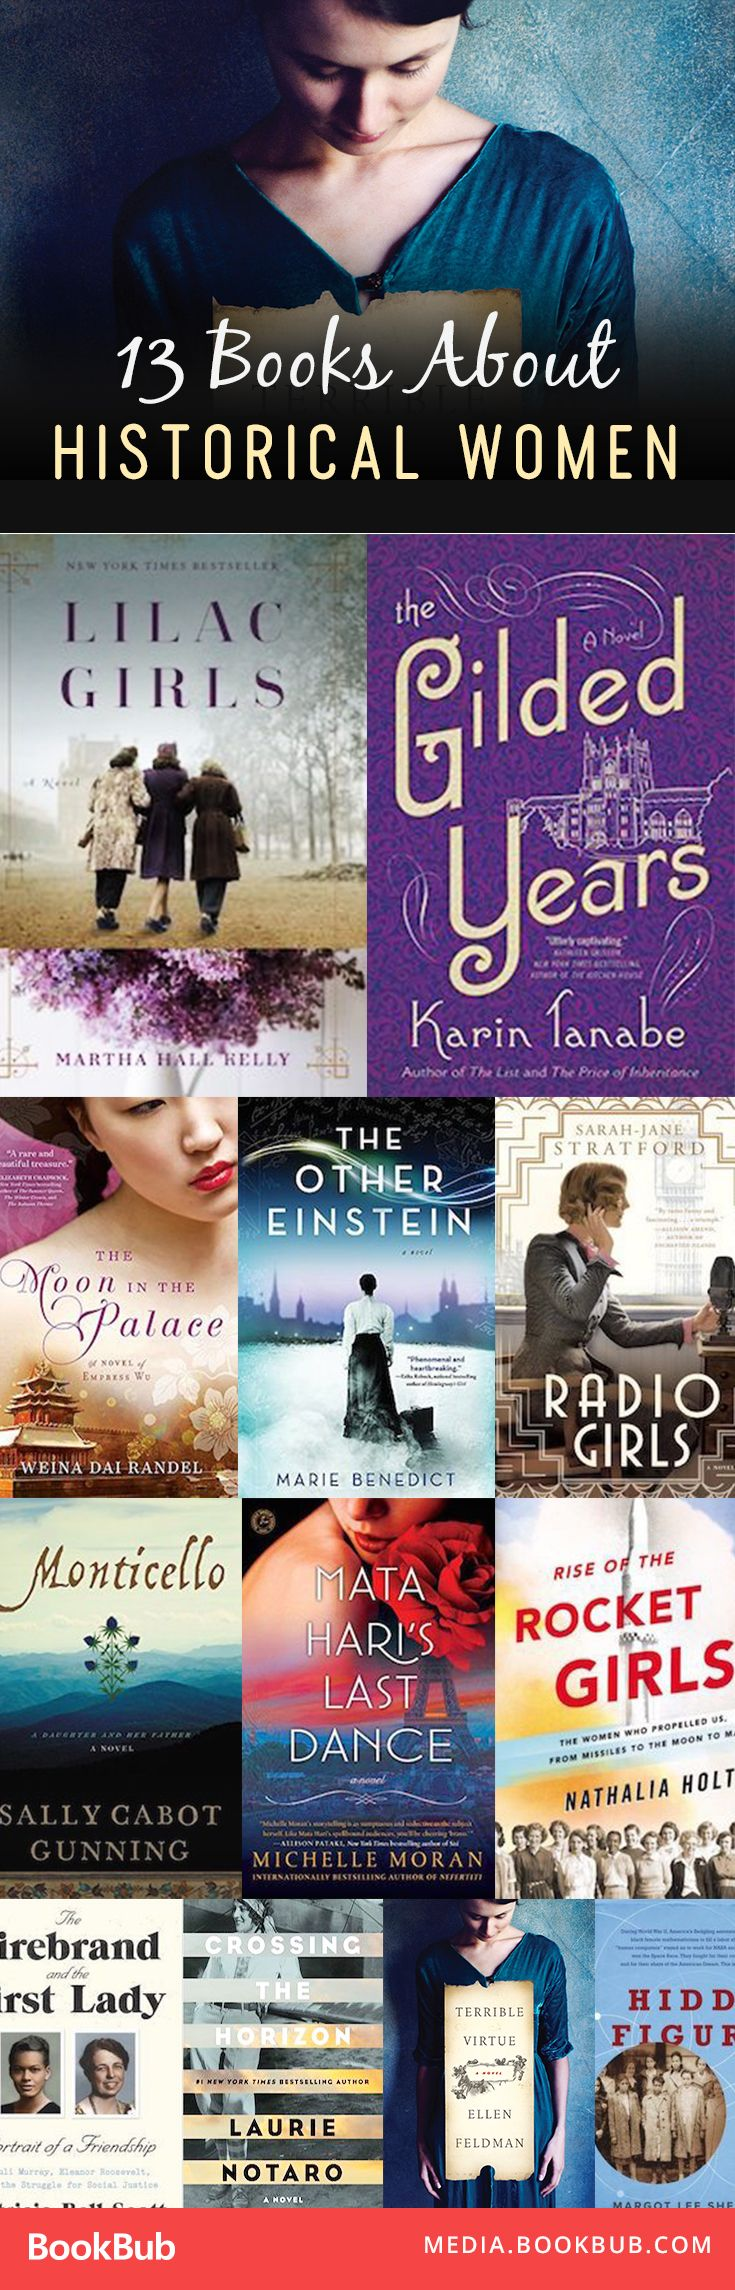 13 great book recommendations about historical women.